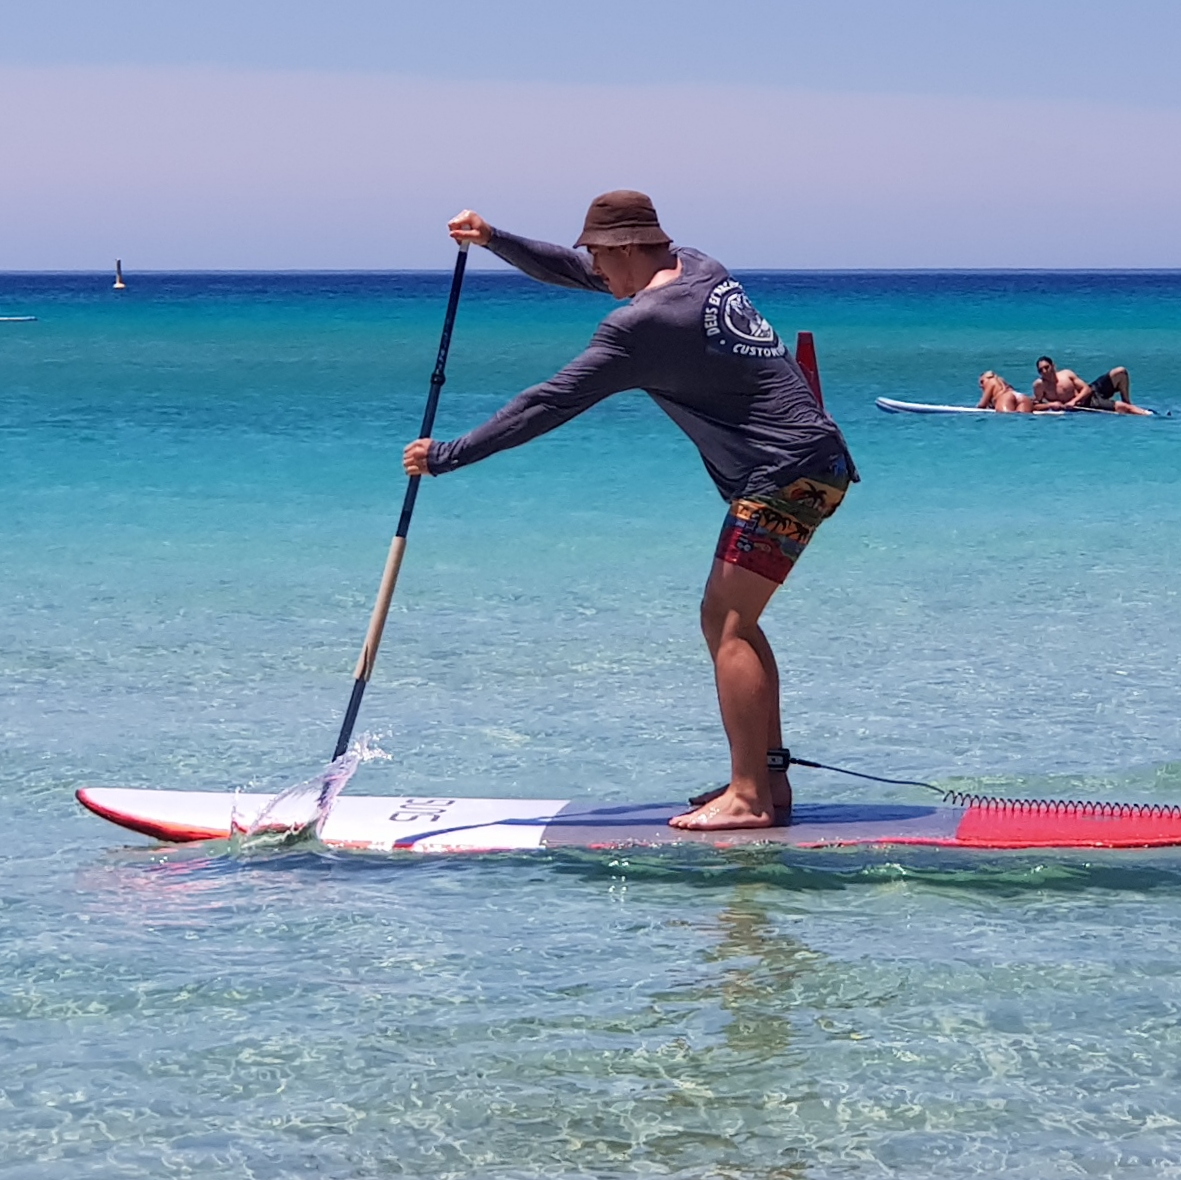 Jake Wain demonstrates good stand up paddle board technique at Meelup Beach.